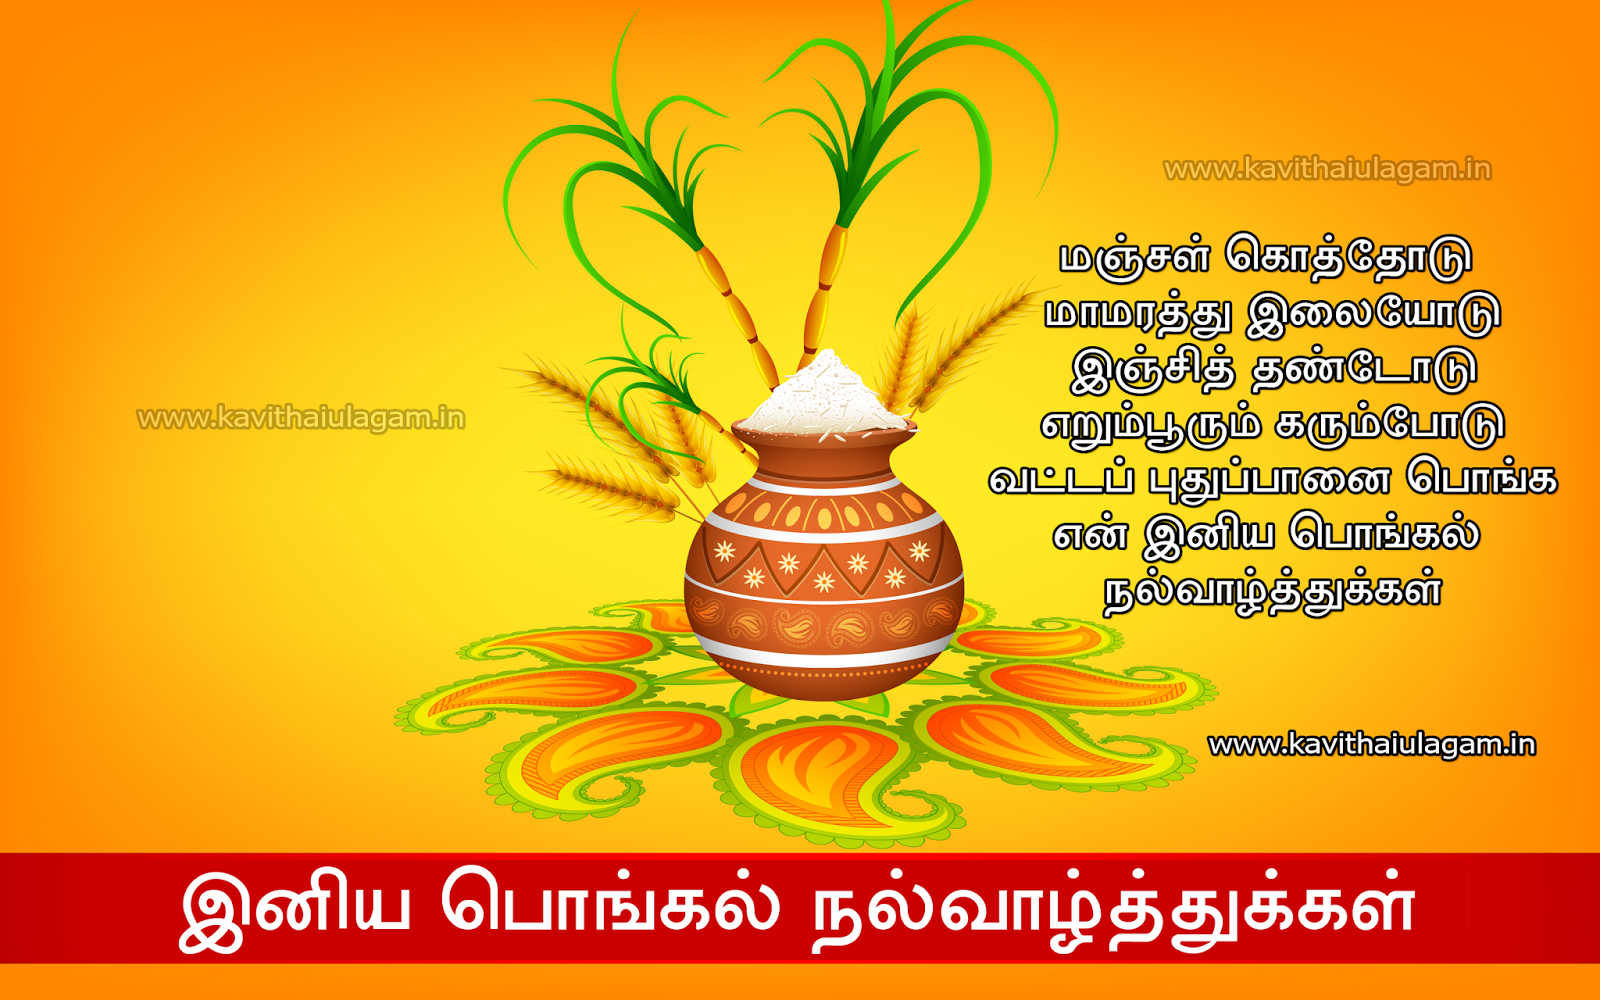 New pongal kavithaigal greetings for wishing friends kavithaigal tamil kavithai wishes greetings about pongal festival happy pongal kavithai photos pongal festival pictures latest sooriyan pongal maatu pongal vazhthu m4hsunfo